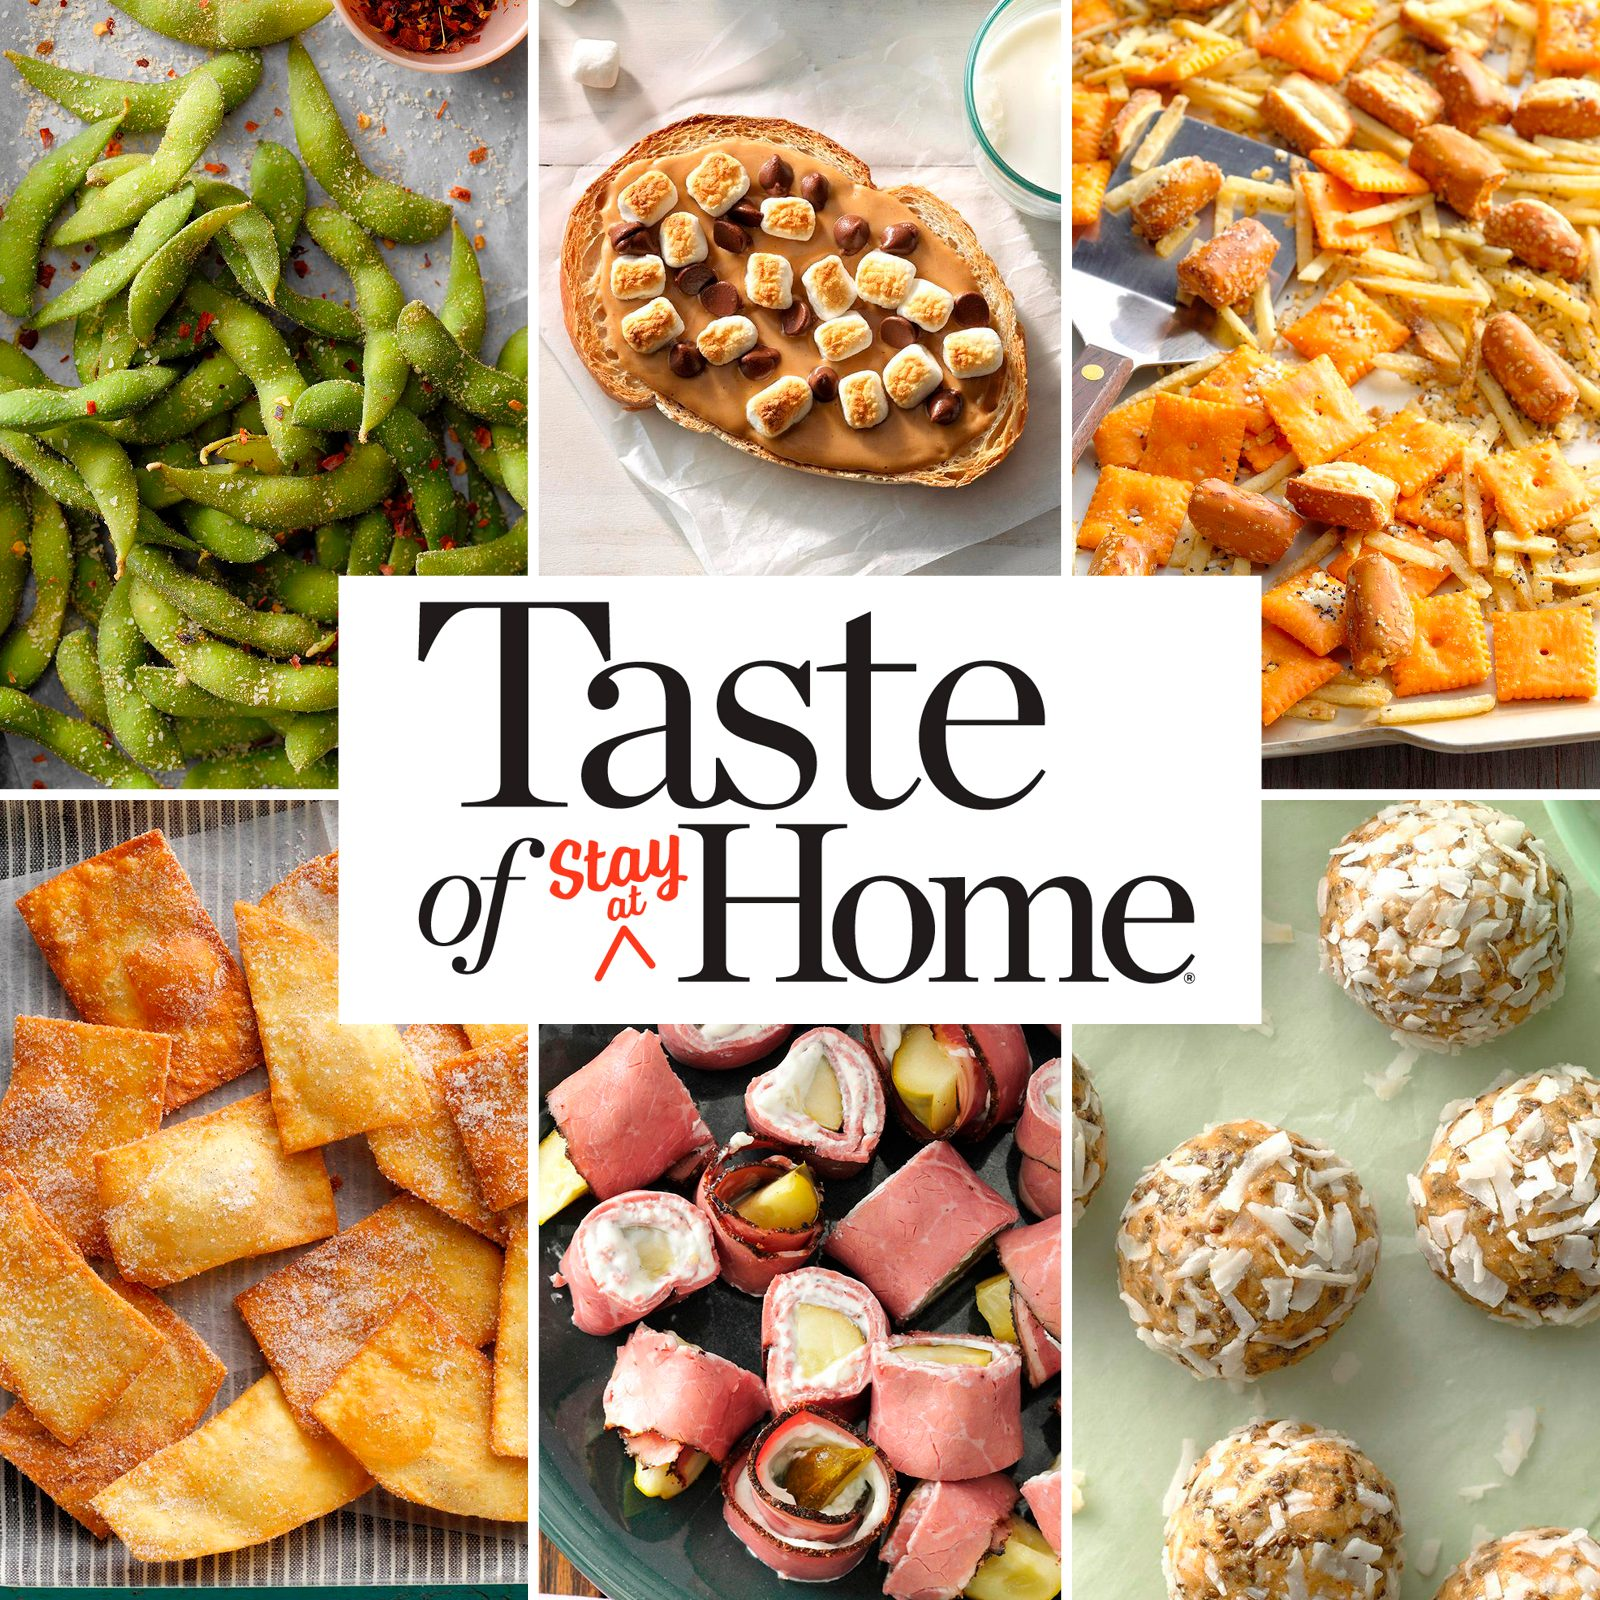 Our 50 Favorite Stay-at-Home Snacks